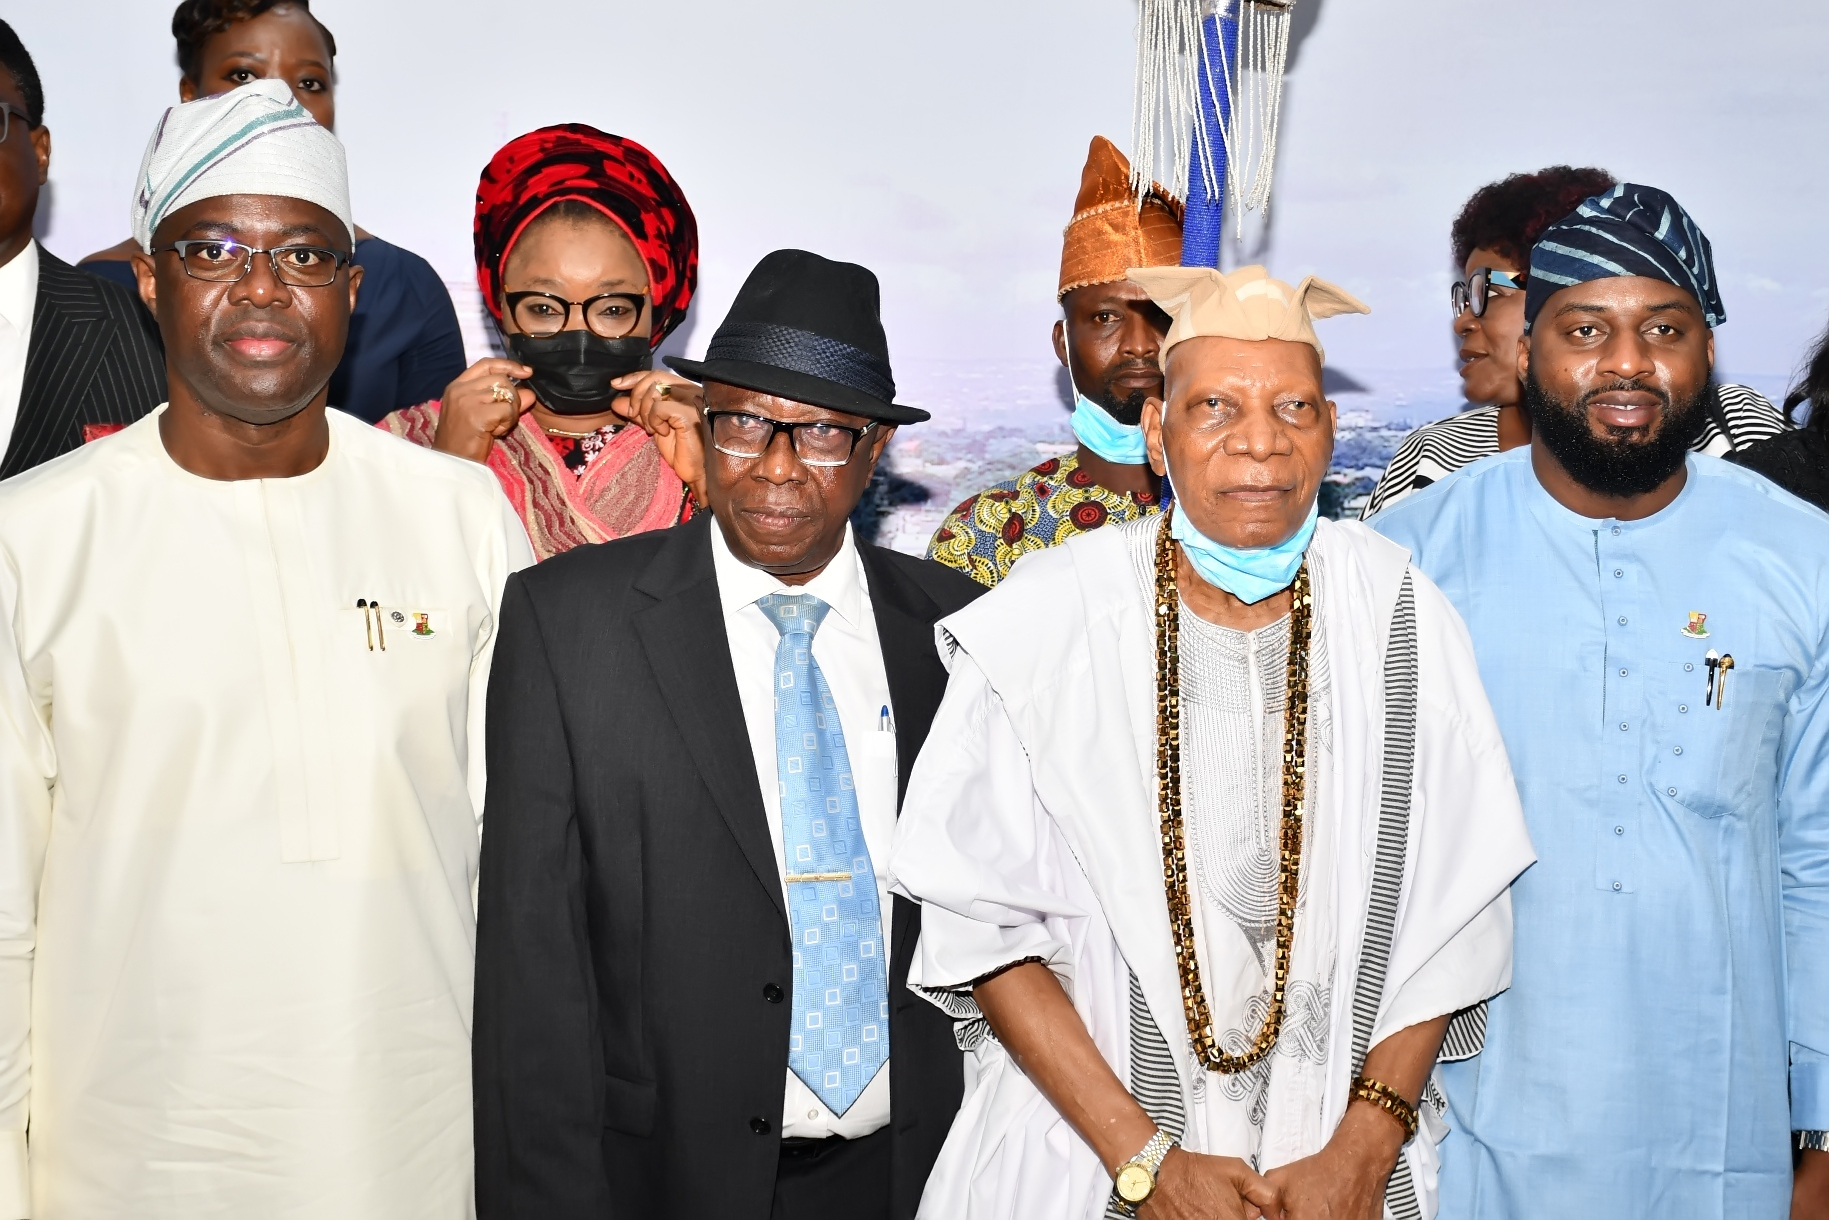 From left, Oyo State Governor, Seyi Makinde; New President, Oyo State Customary Court of Appeal Honorable Justice Moshood Abass; representative of Olubadan of Ibadanland, High Chief Eddy Oyewole and Speaker, Oyo State House of Assembly, Hon Debo Ogundoyin during the swearing-in of Justice Abass as President, Customary Court of Appeal held at Governor's Office, Secretariat, Ibadan.